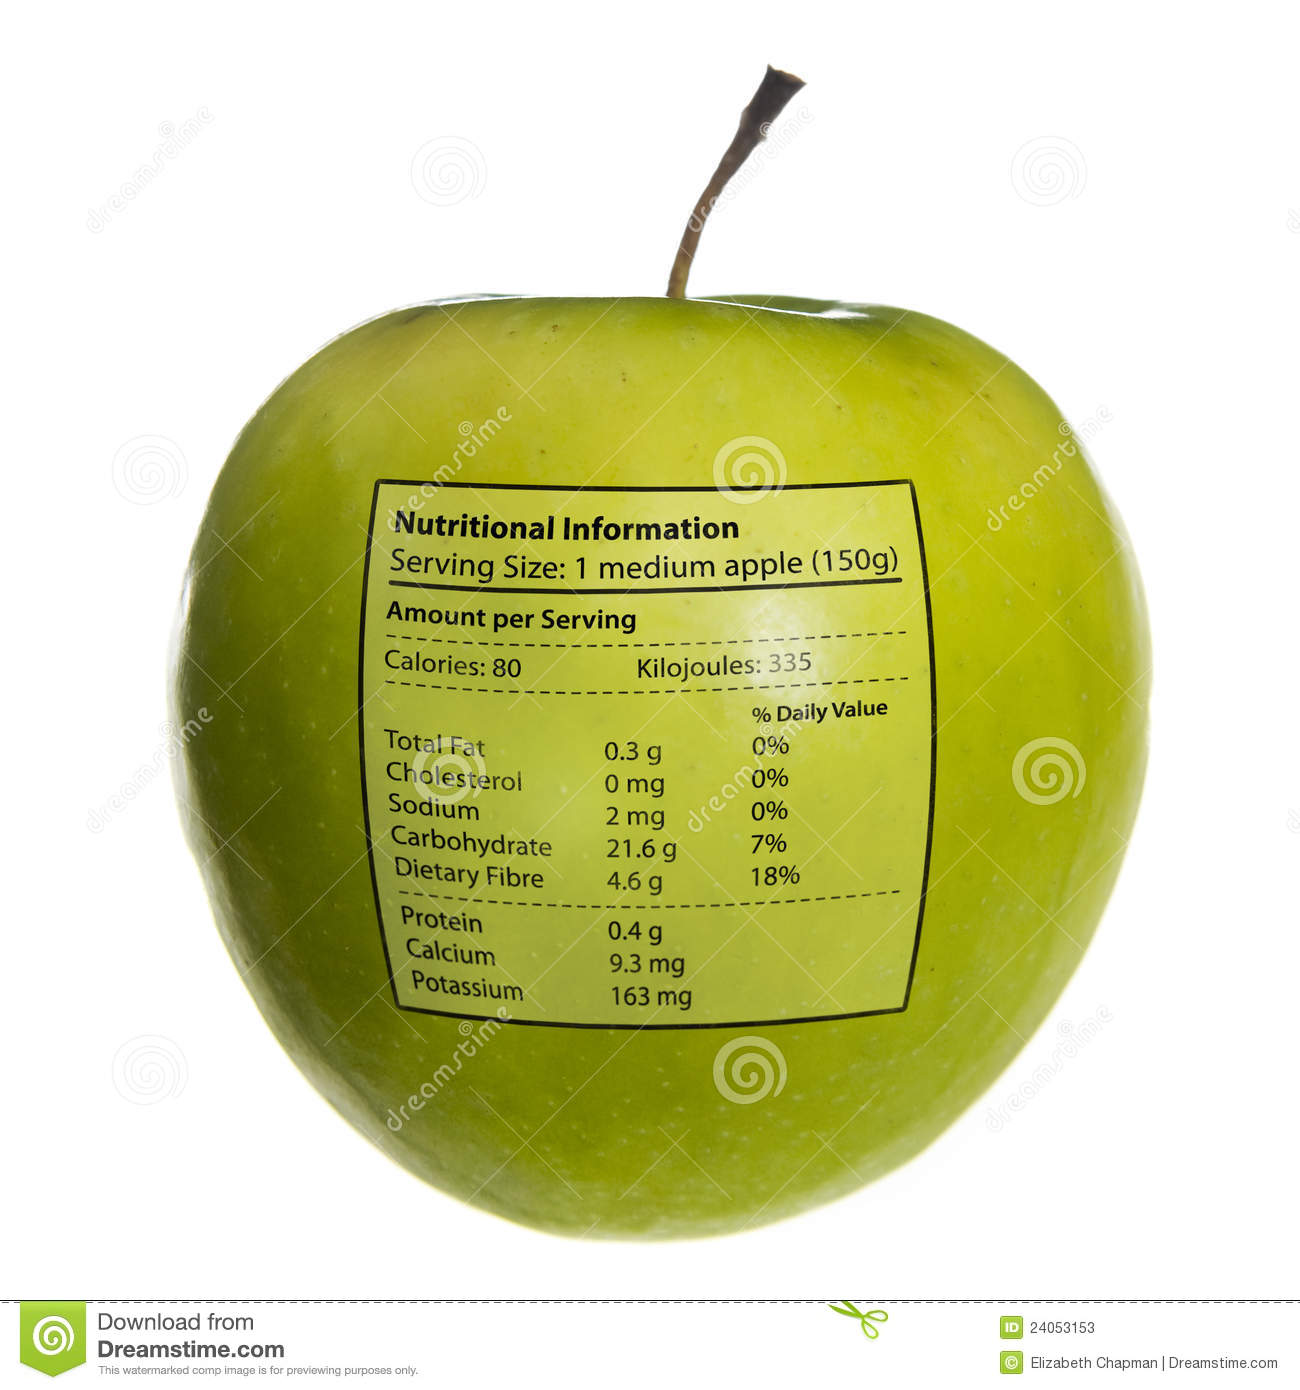 Isolated objects: apple with